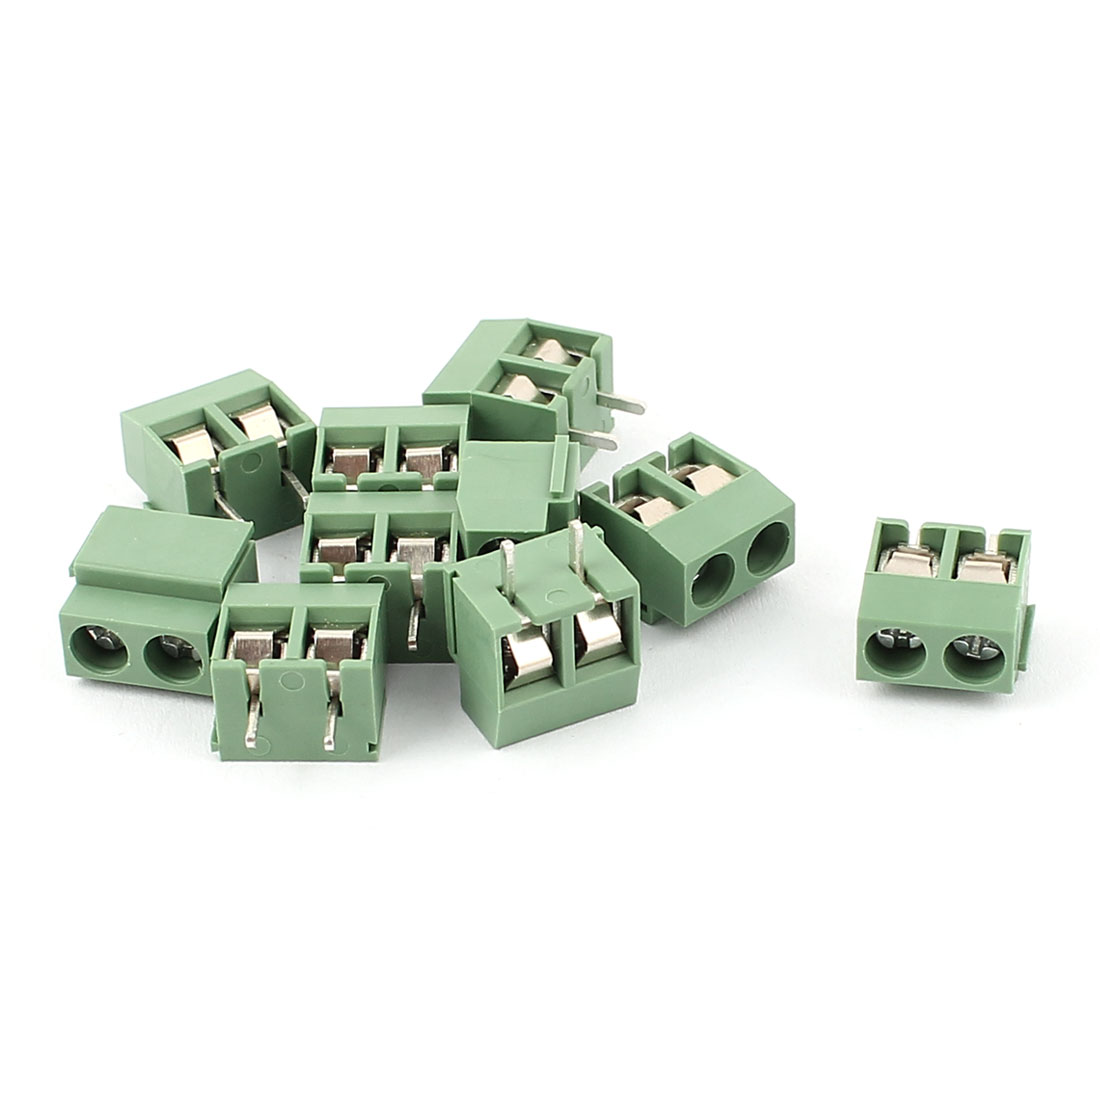 10 Pcs 2 Position 5.0mm Pitch Male Plug PCB Screw Terminal Block AC 250V 8A